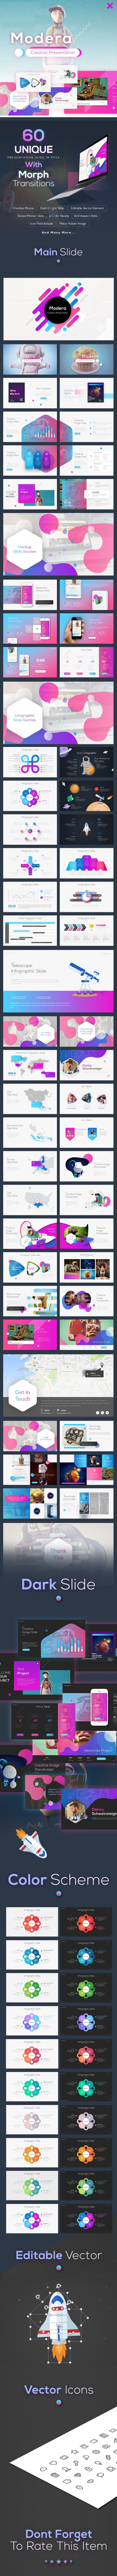 Modera - Creative Presentation - #Business #PowerPoint Templates